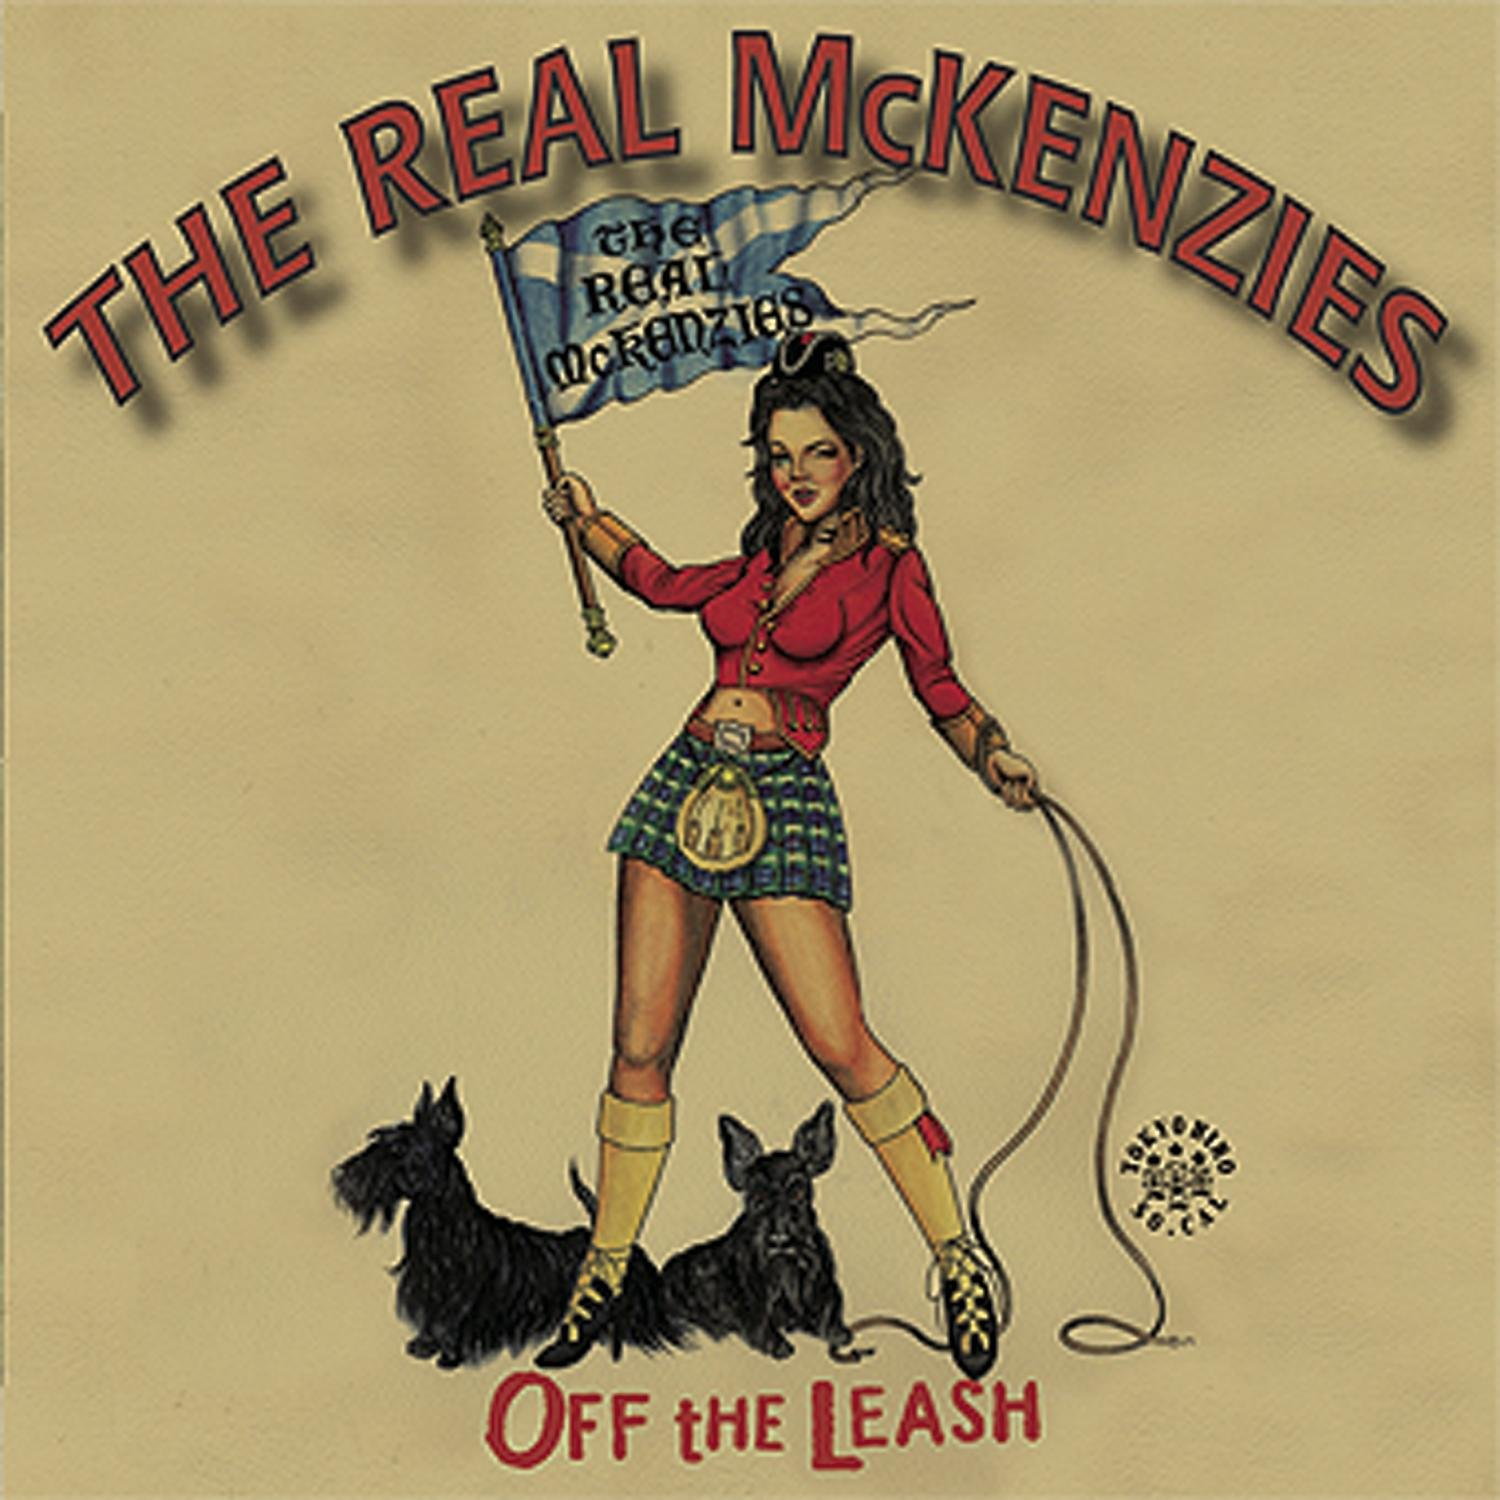 Off The Leash by Real McKenzies